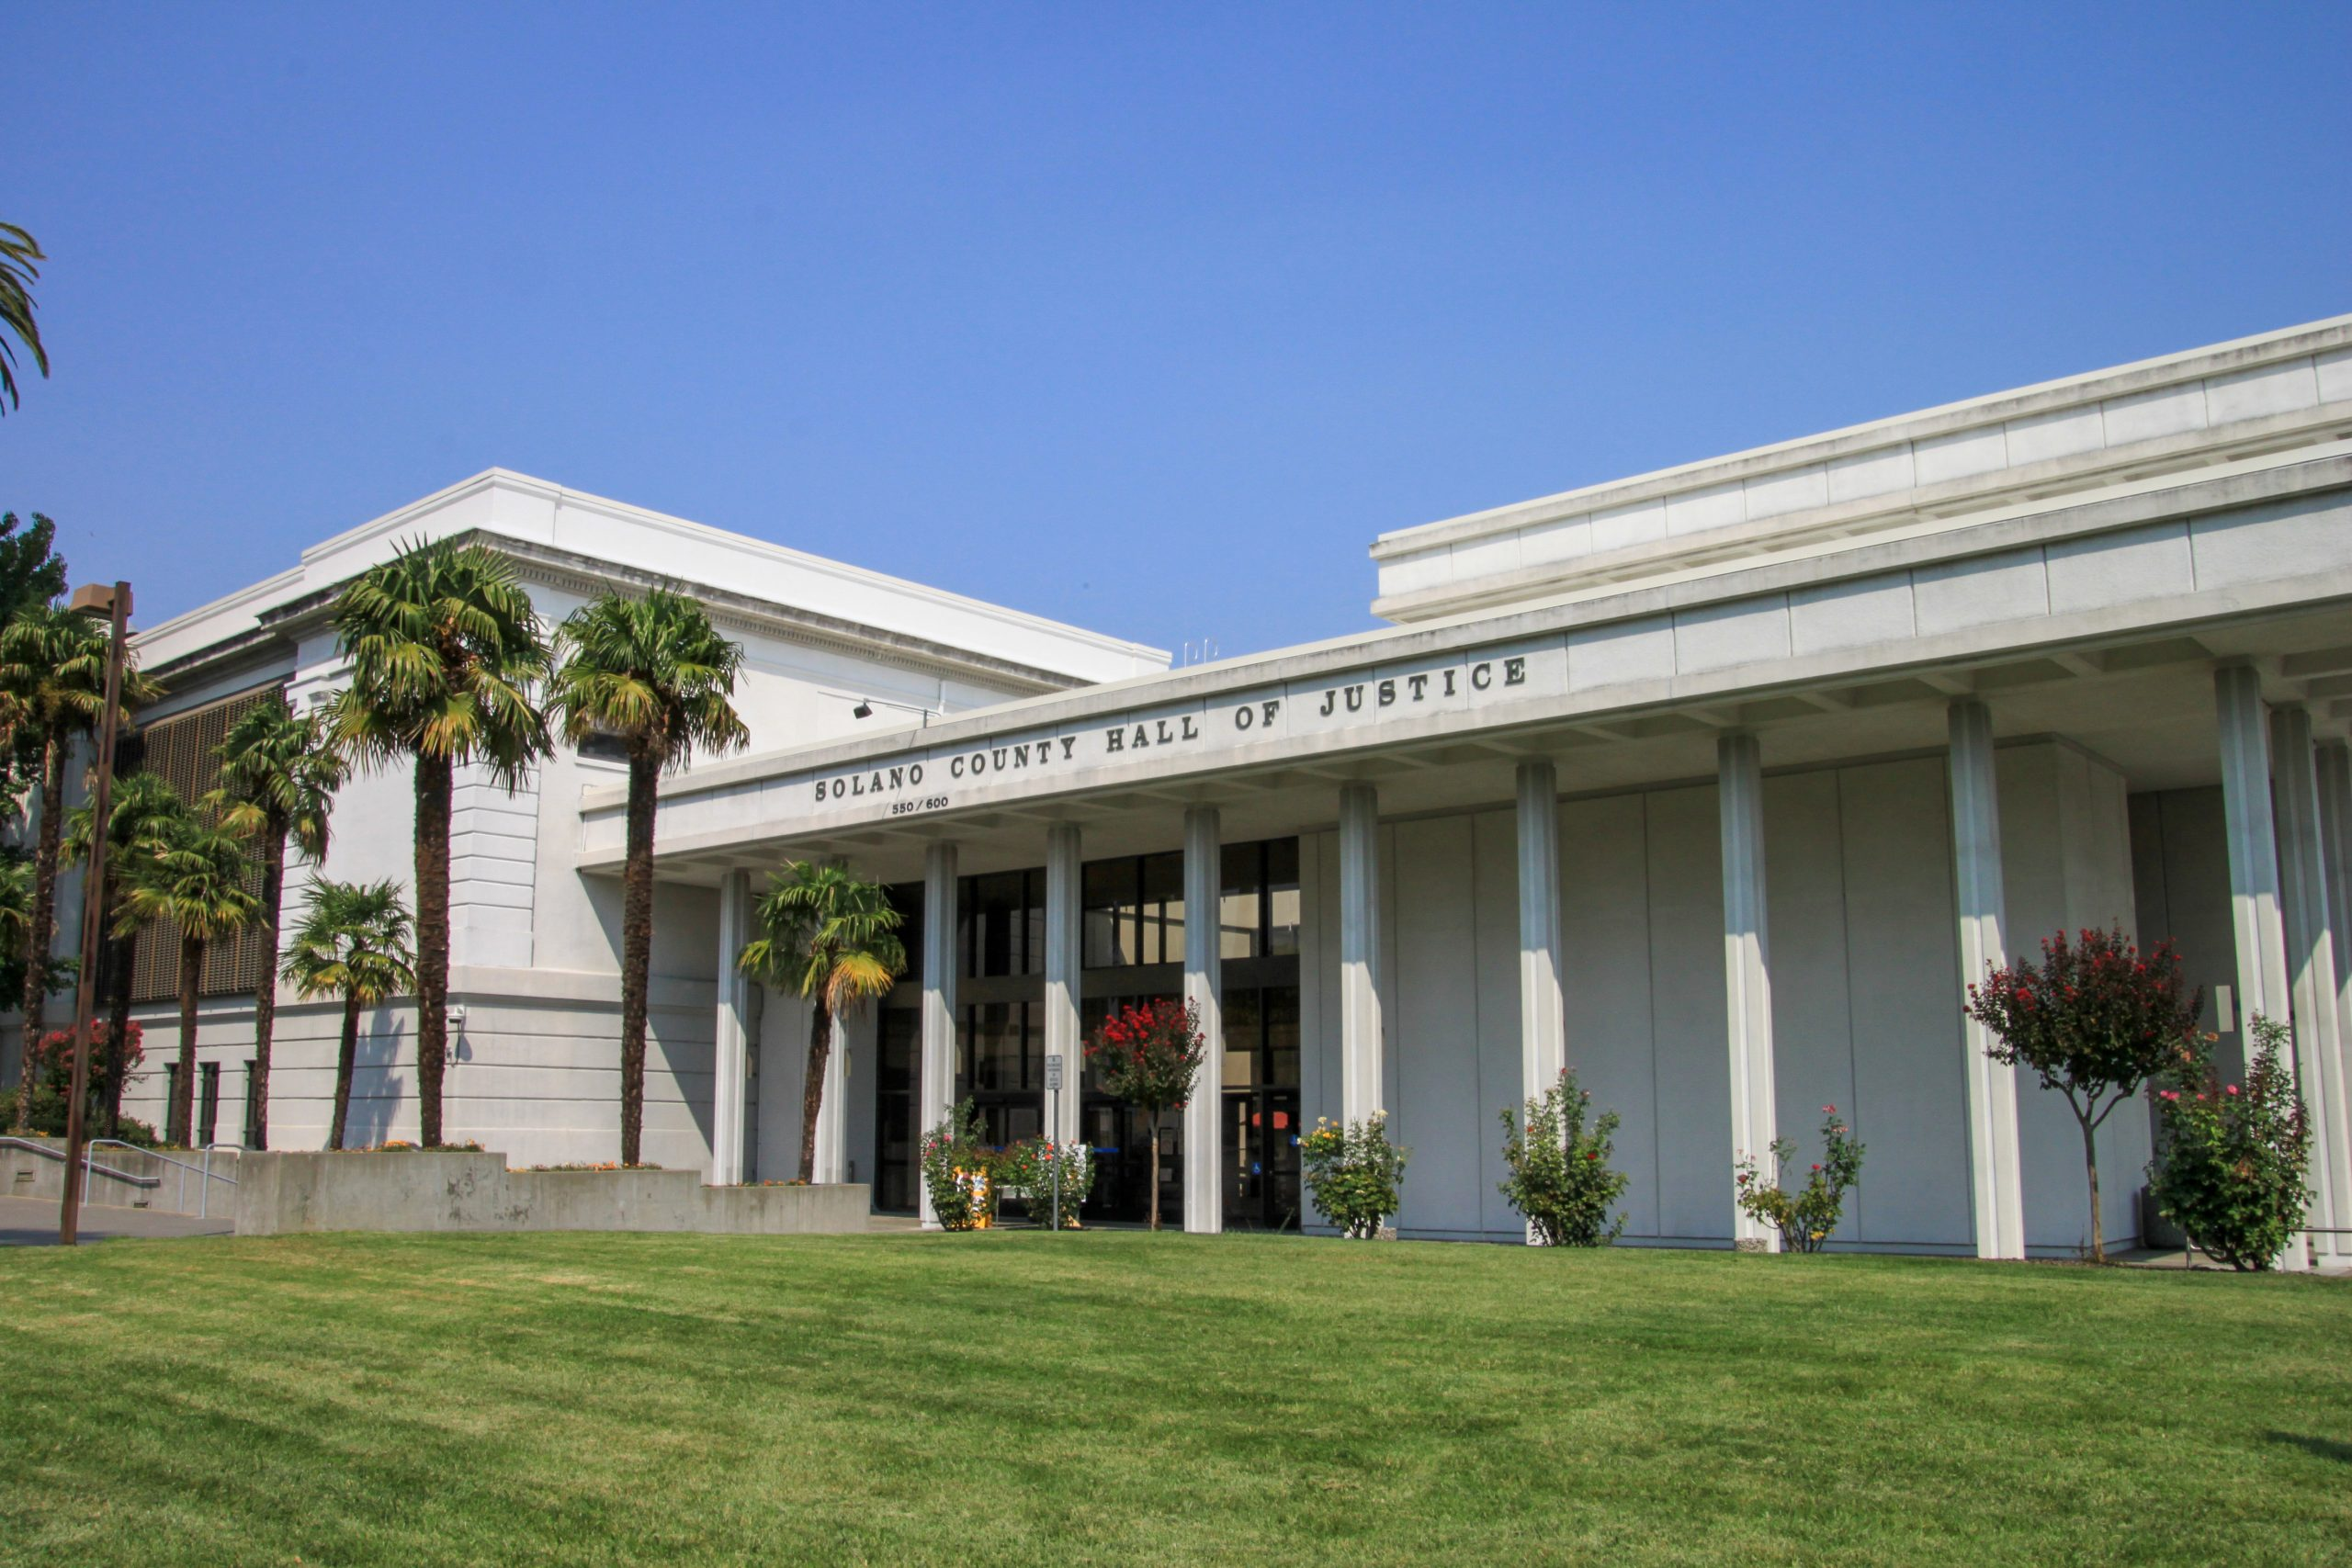 Exterior Of The Solano County Law Library, Located Within The Solano County Hall Of Justice.